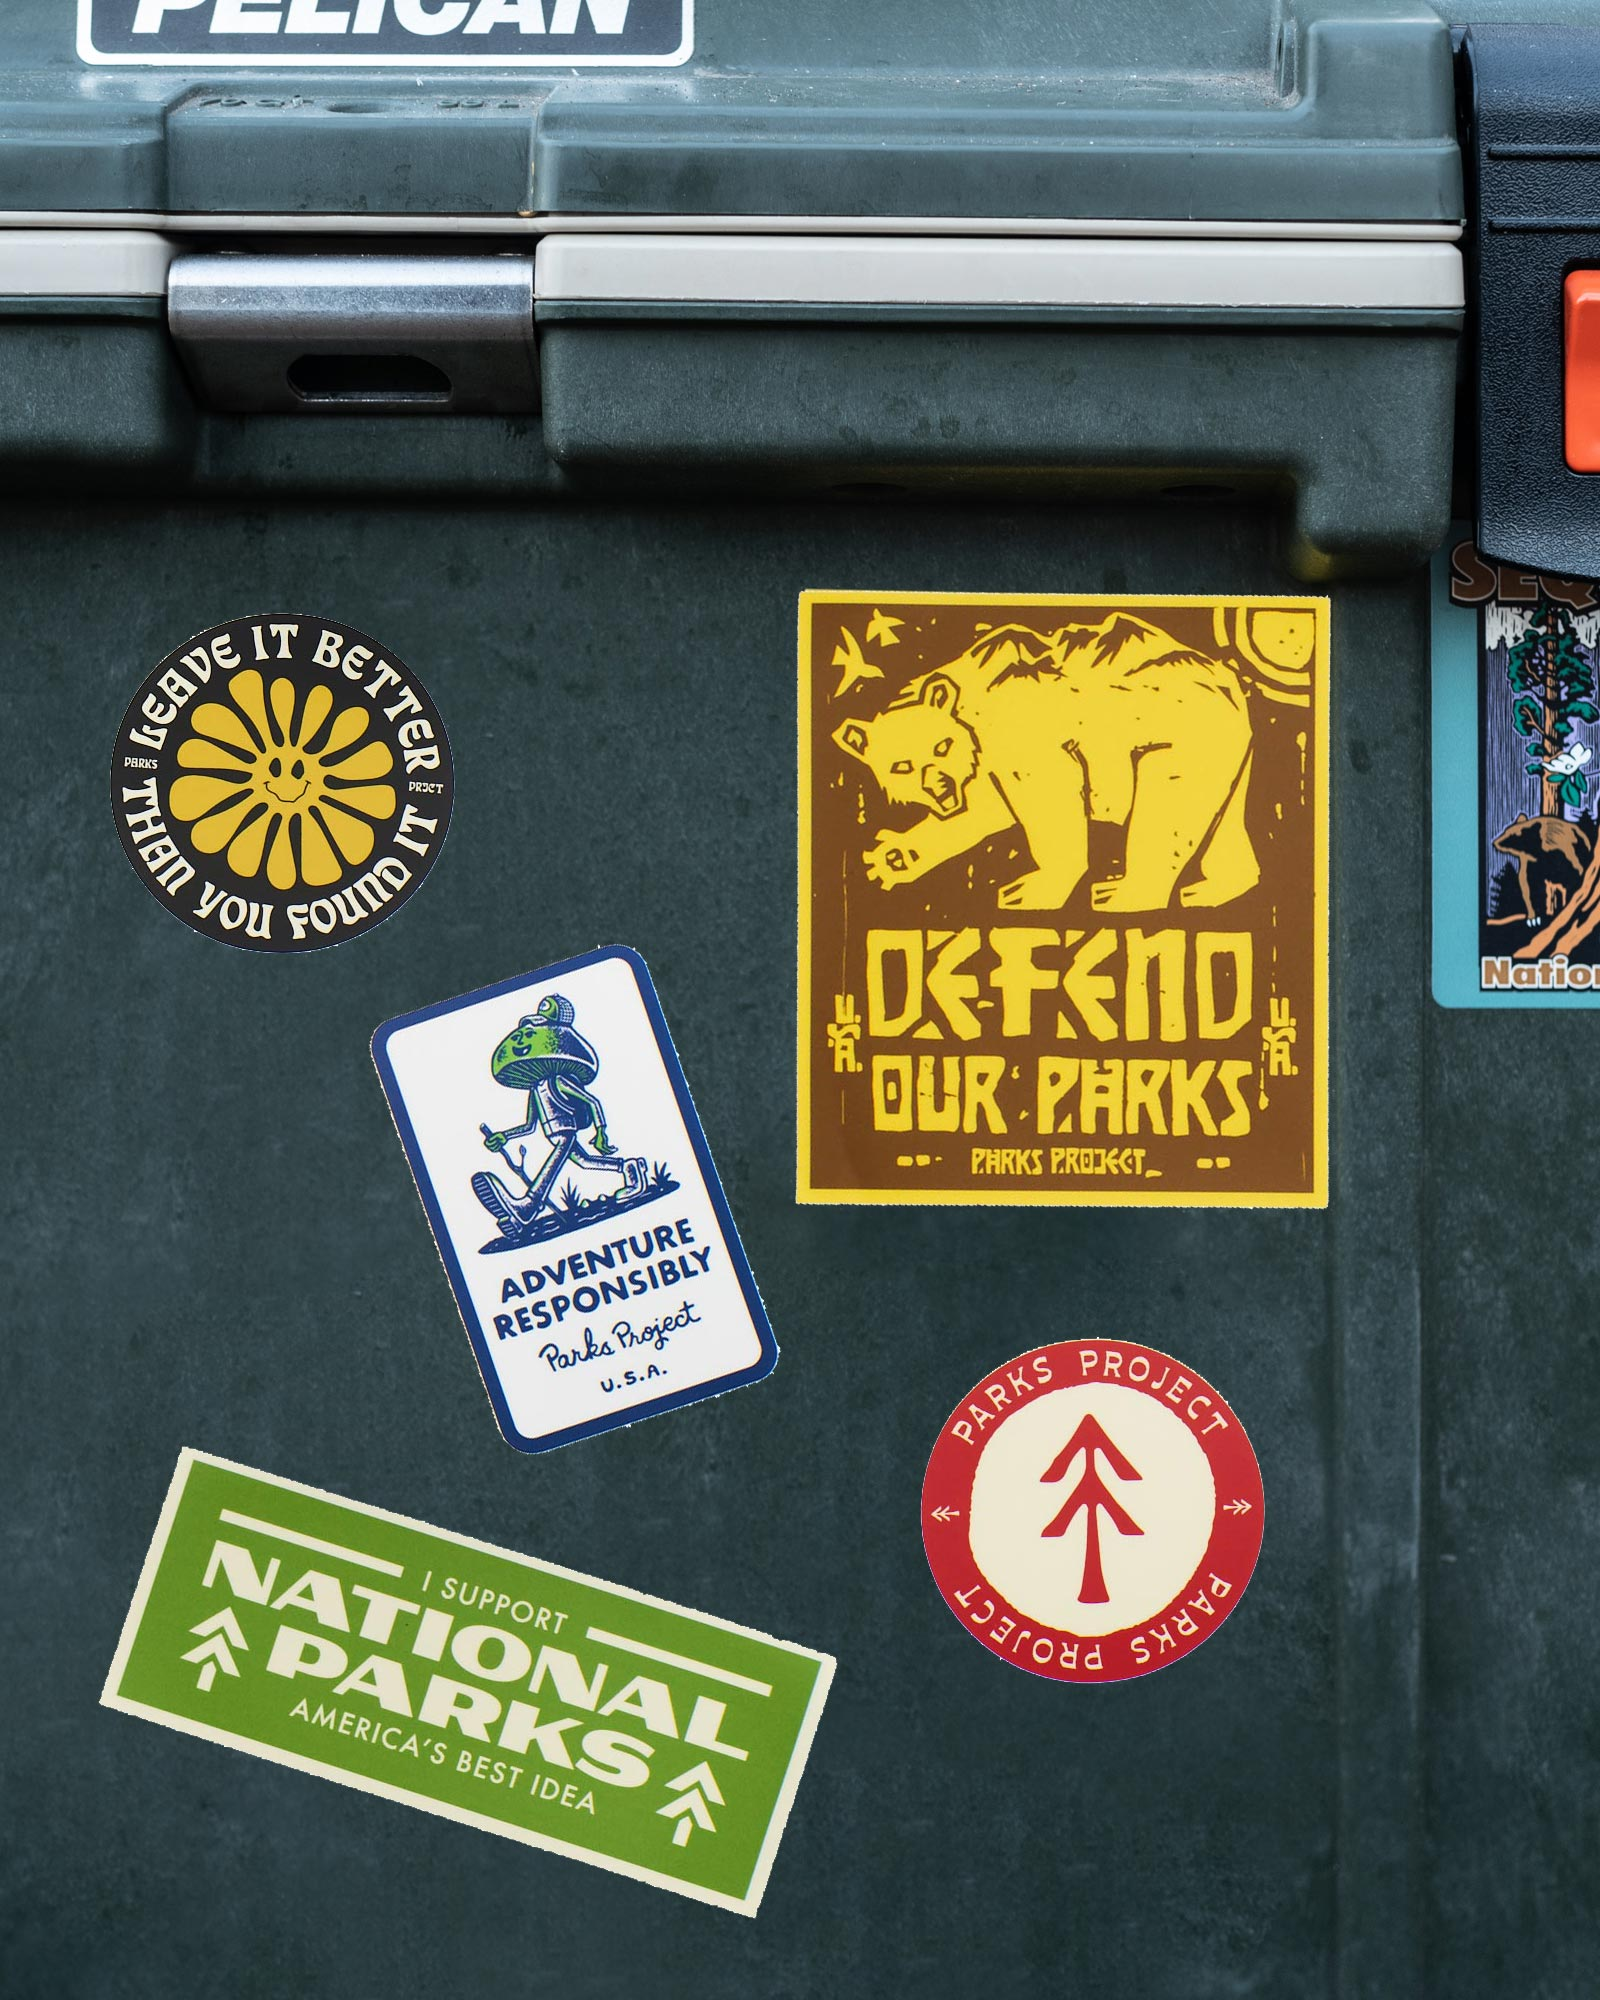 Parks Project Parks Adventurer Sticker Pack